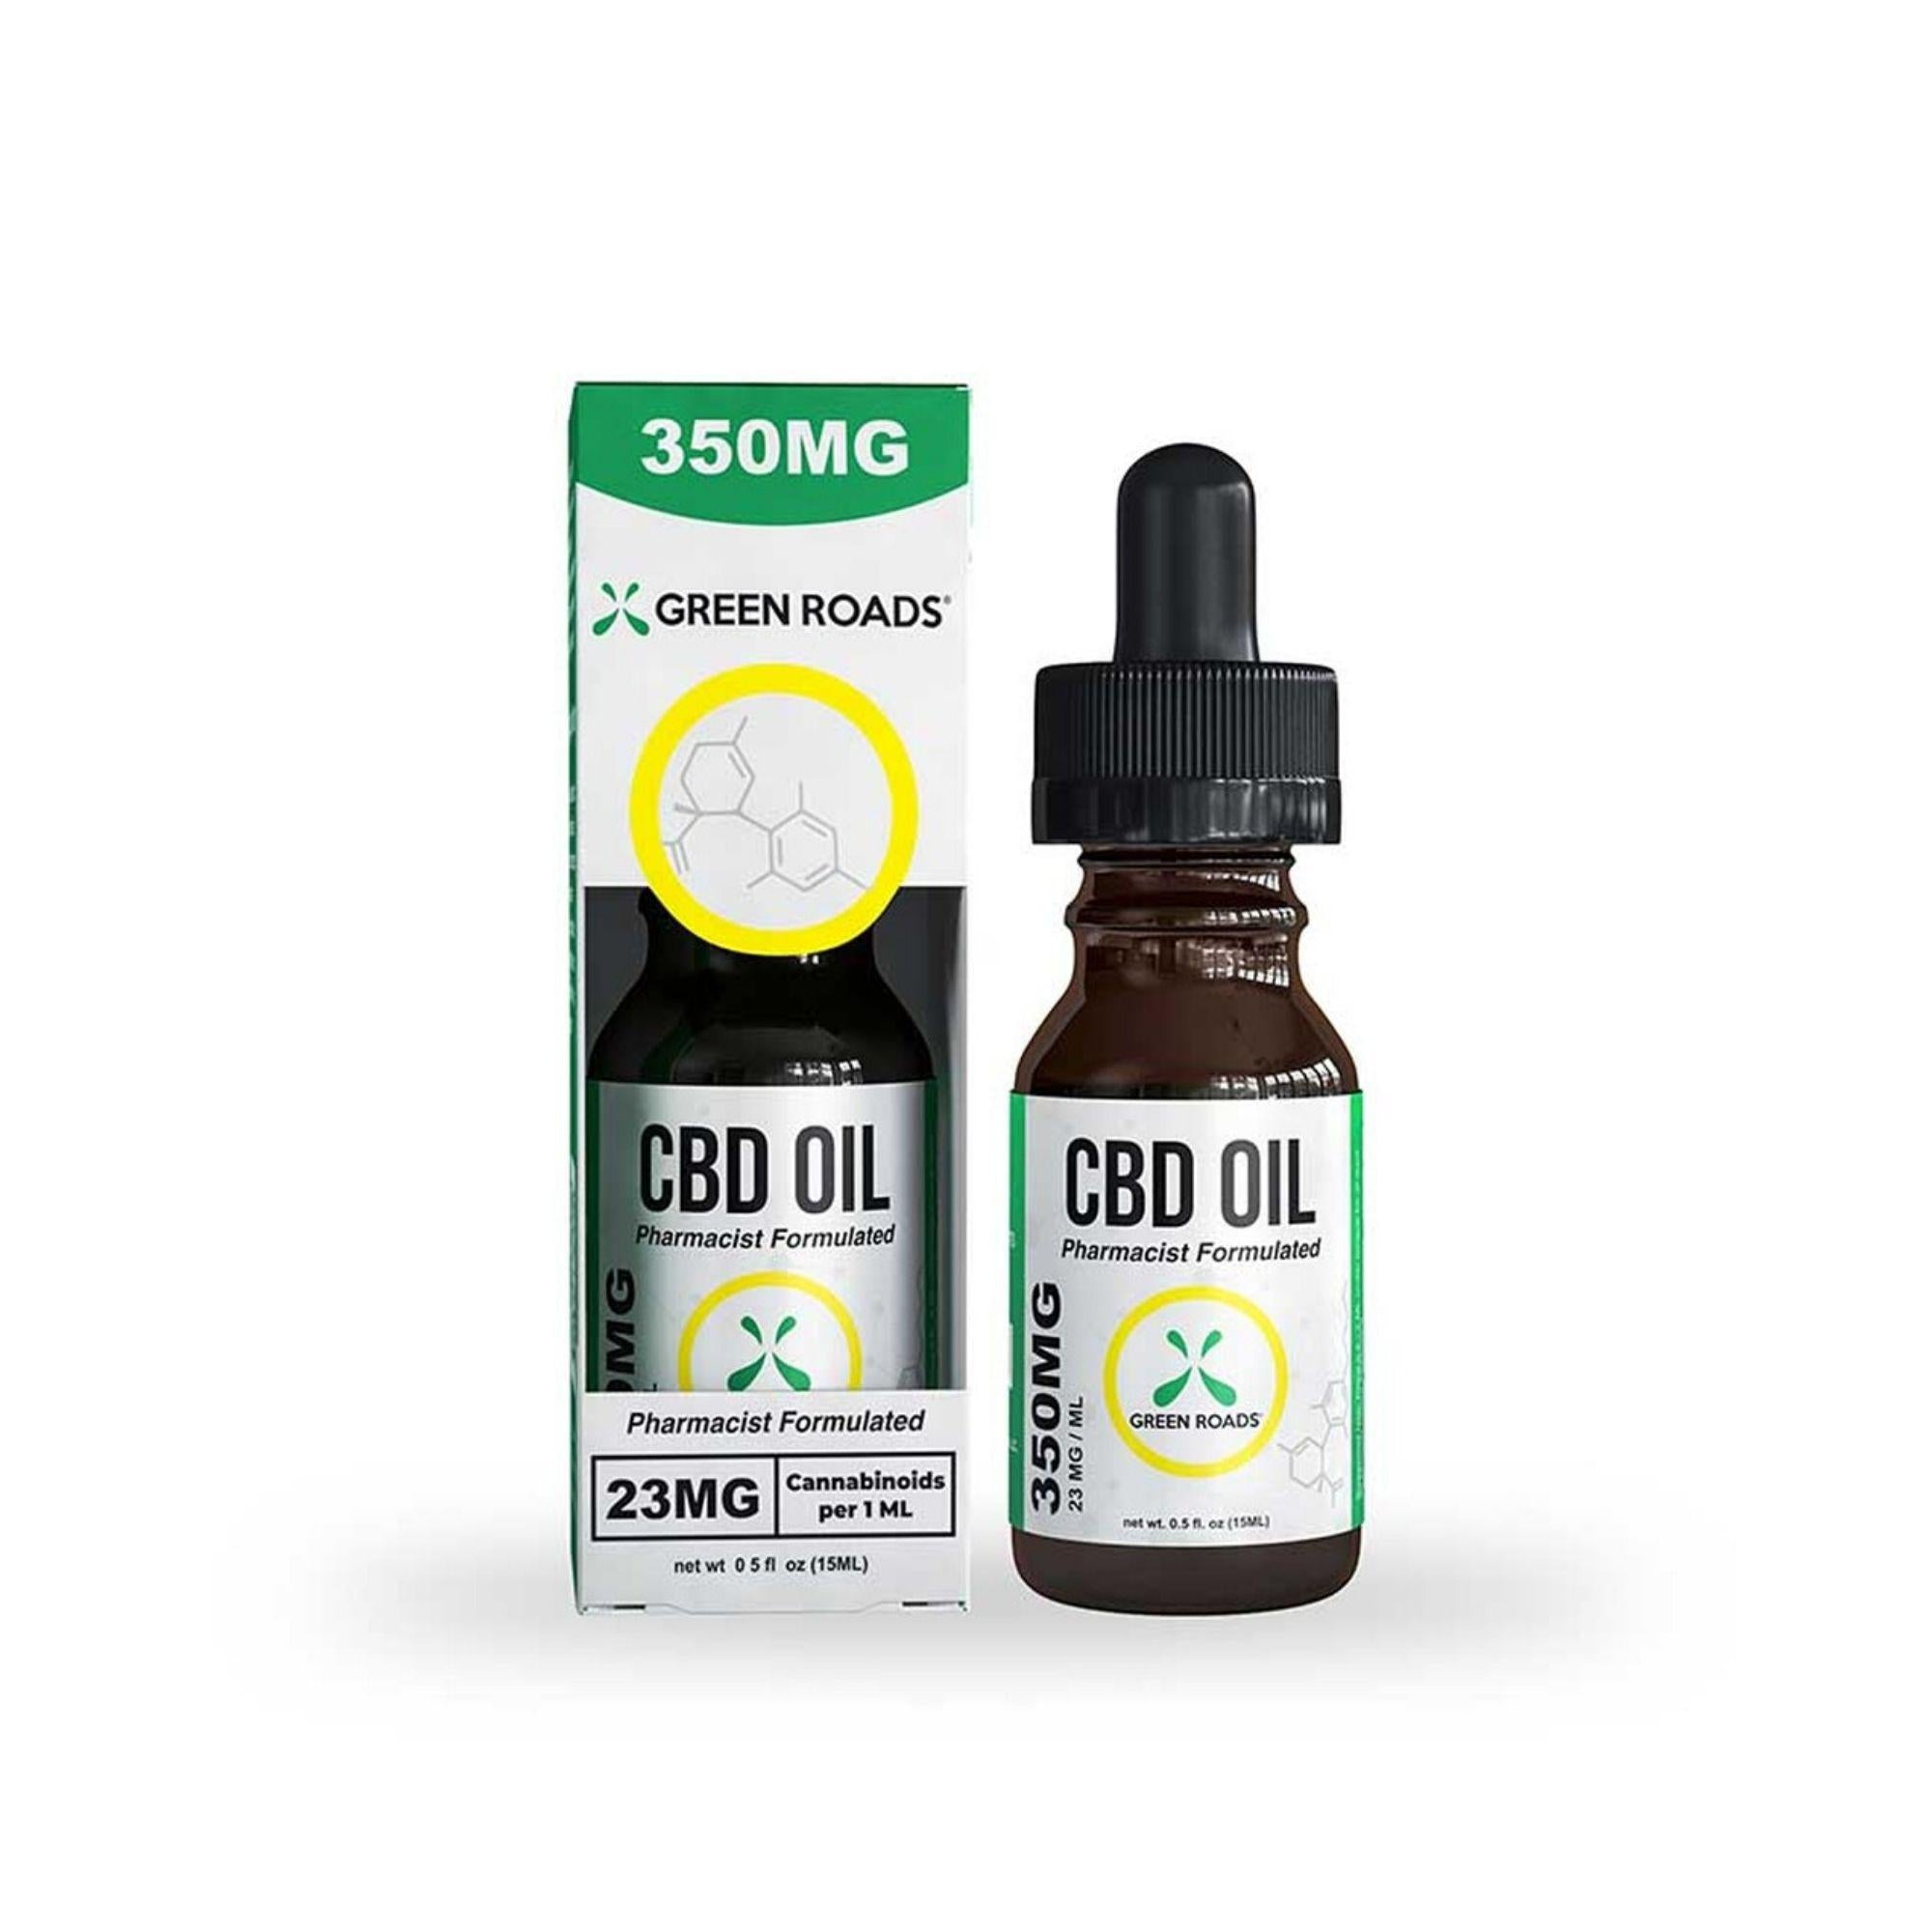 Green Roads 350MG CBD Oil (15ML)